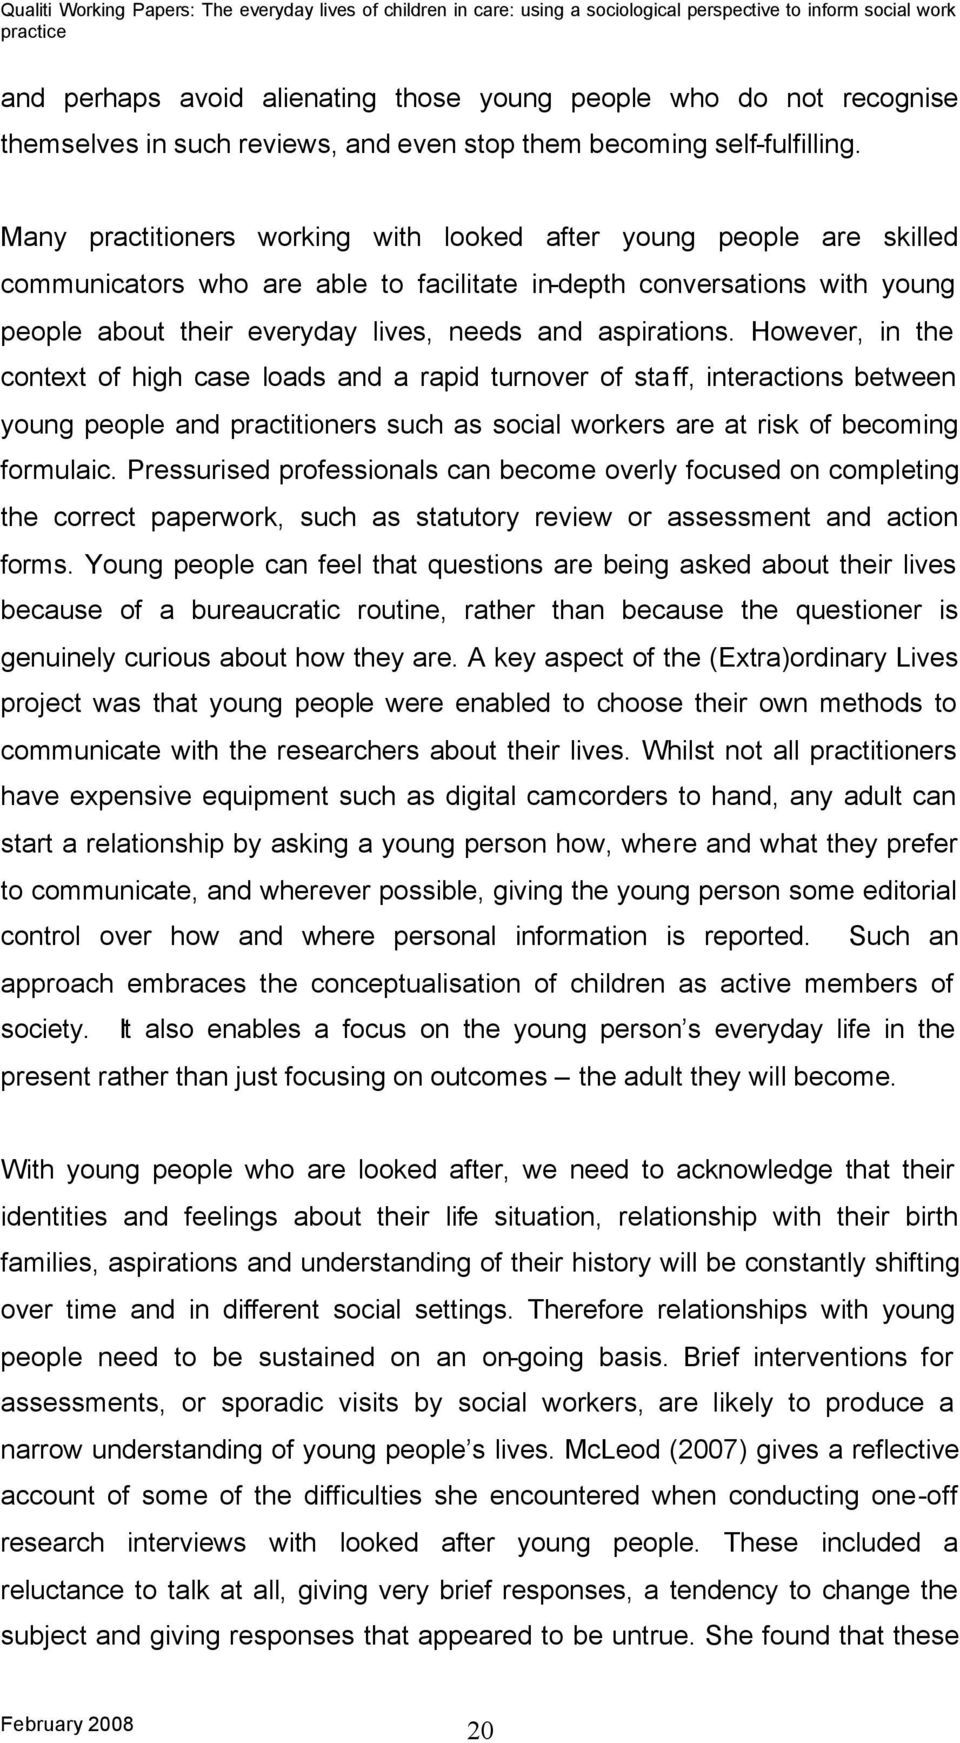 aspirations. However, in the context of high case loads and a rapid turnover of staff, interactions between young people and practitioners such as social workers are at risk of becoming formulaic.